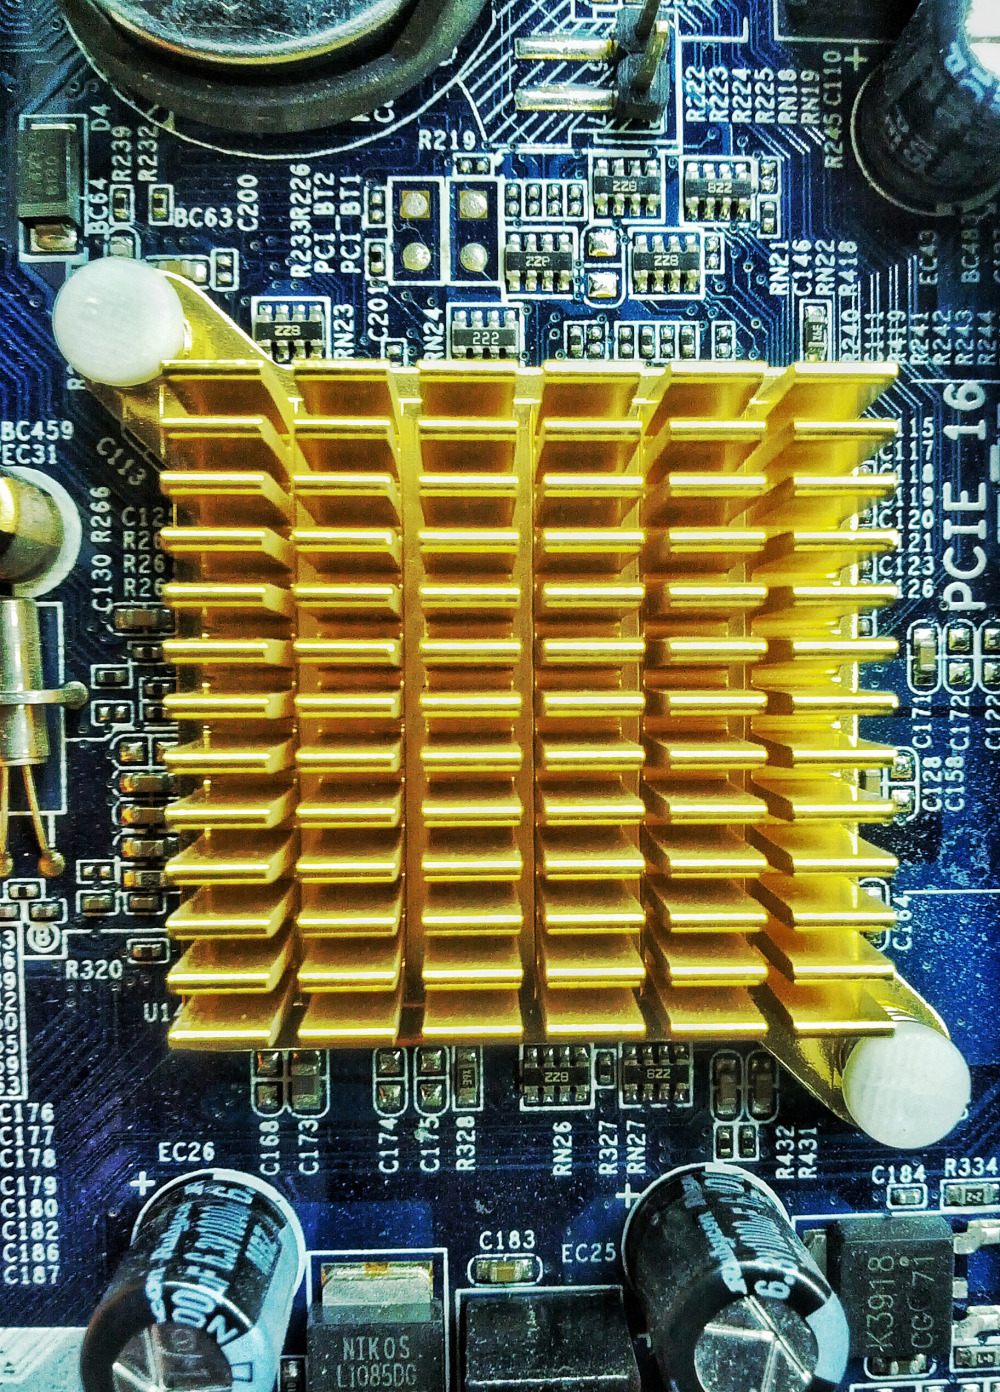 South Bridge Heat Sink